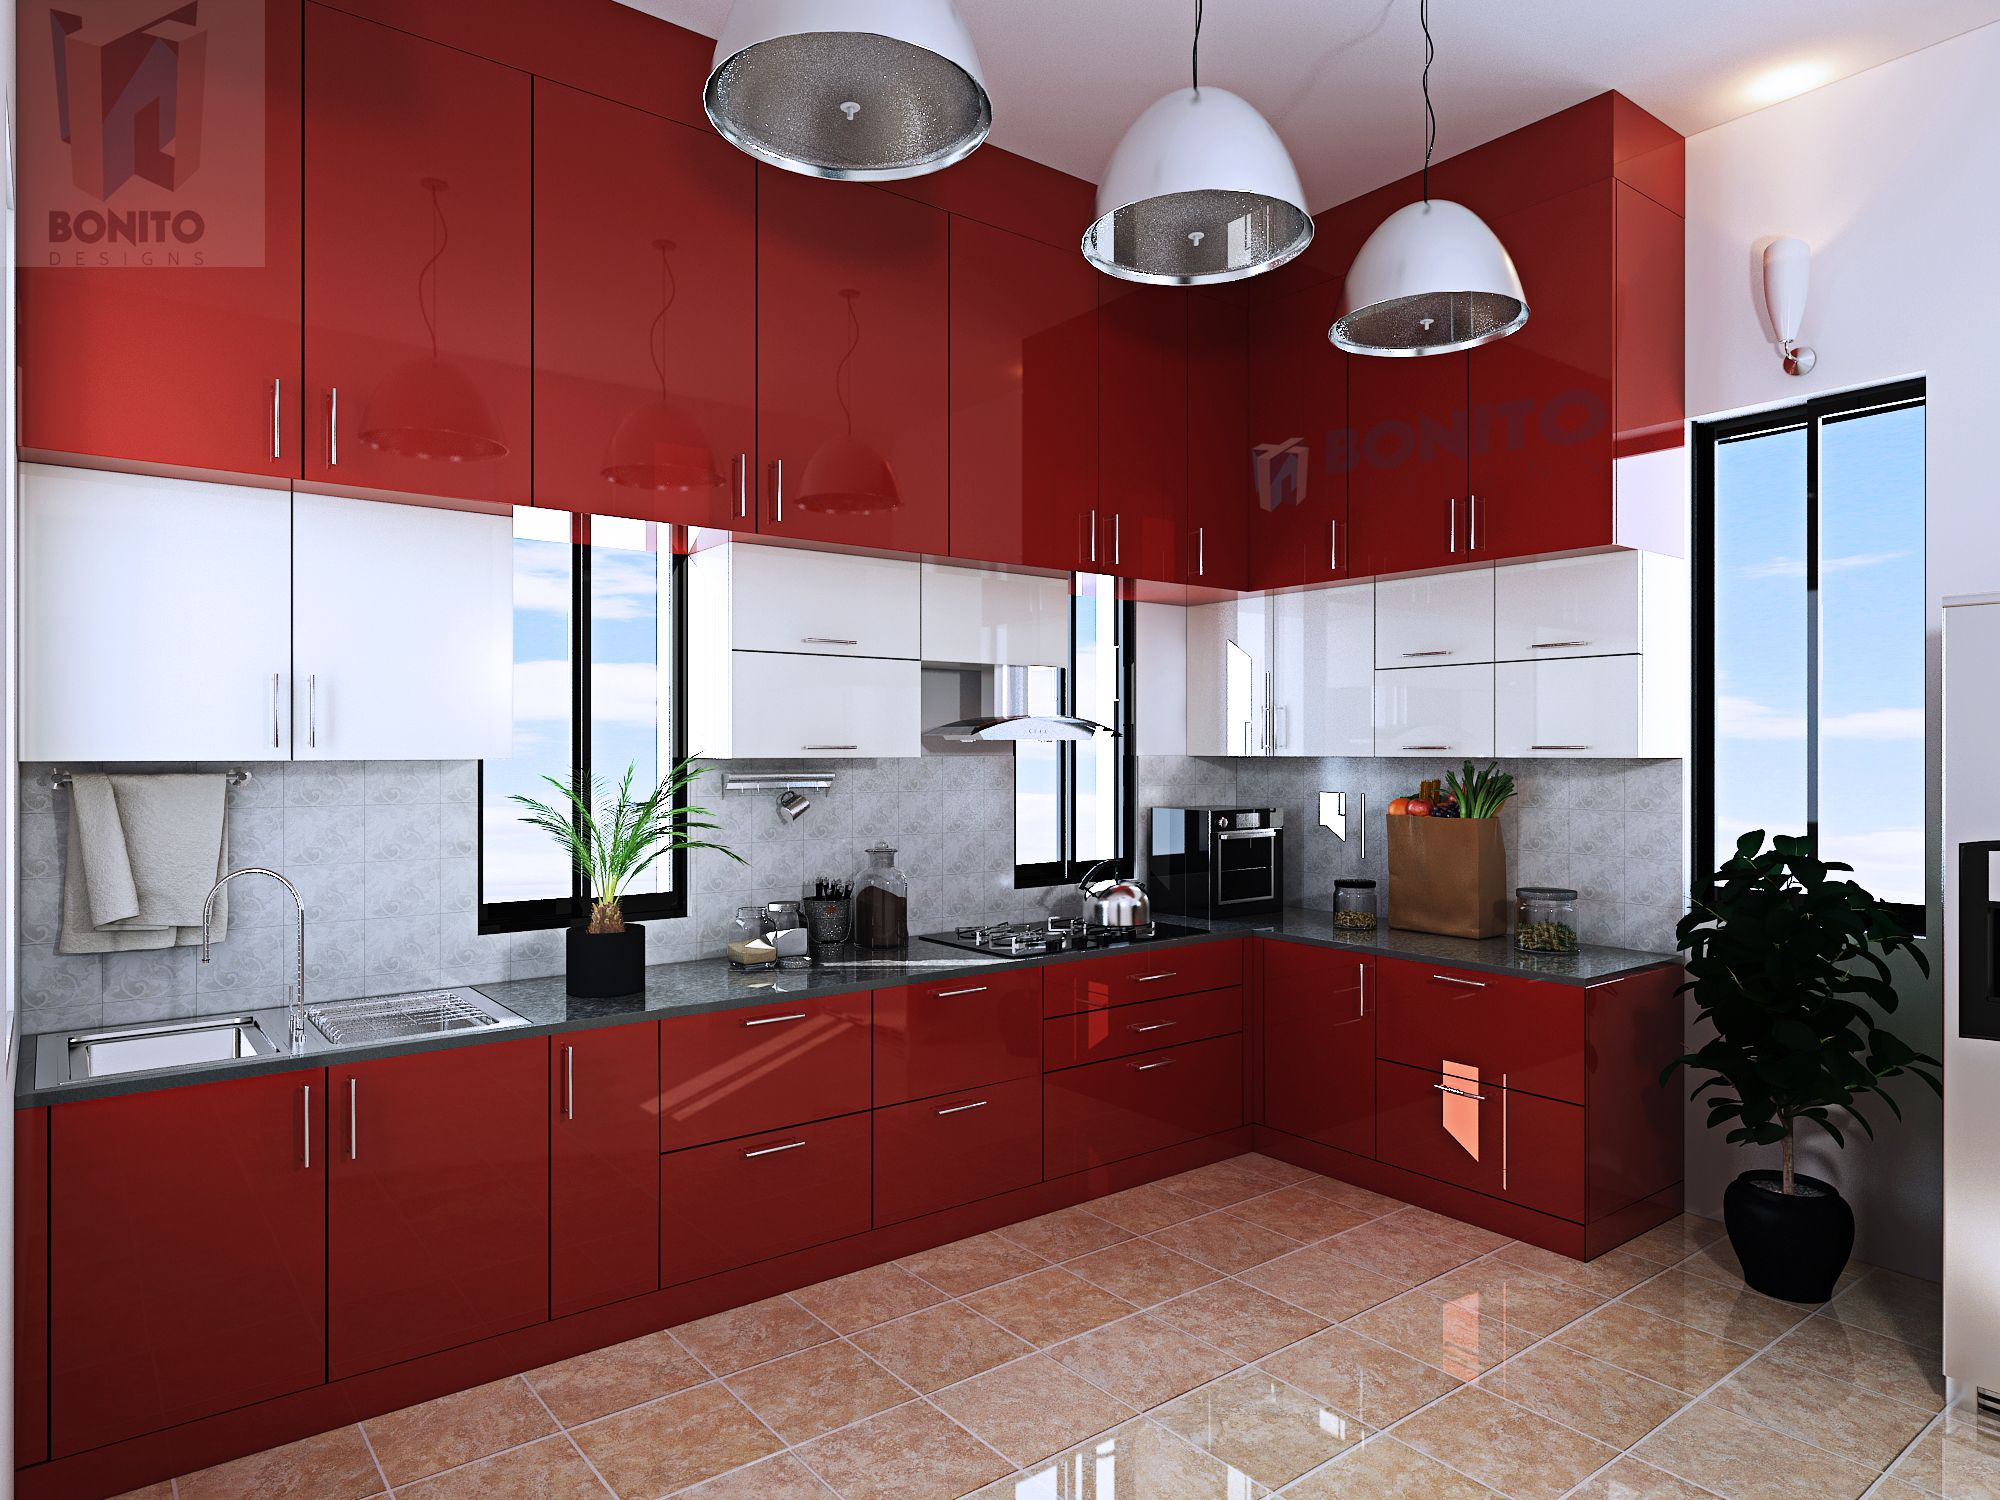 Modular Kitchens Can Make Life Easier In And Around The Kitchen How About This Rich Maroon One By Bonito Desi Kitchen Interior Kitchen Design Apartment Design